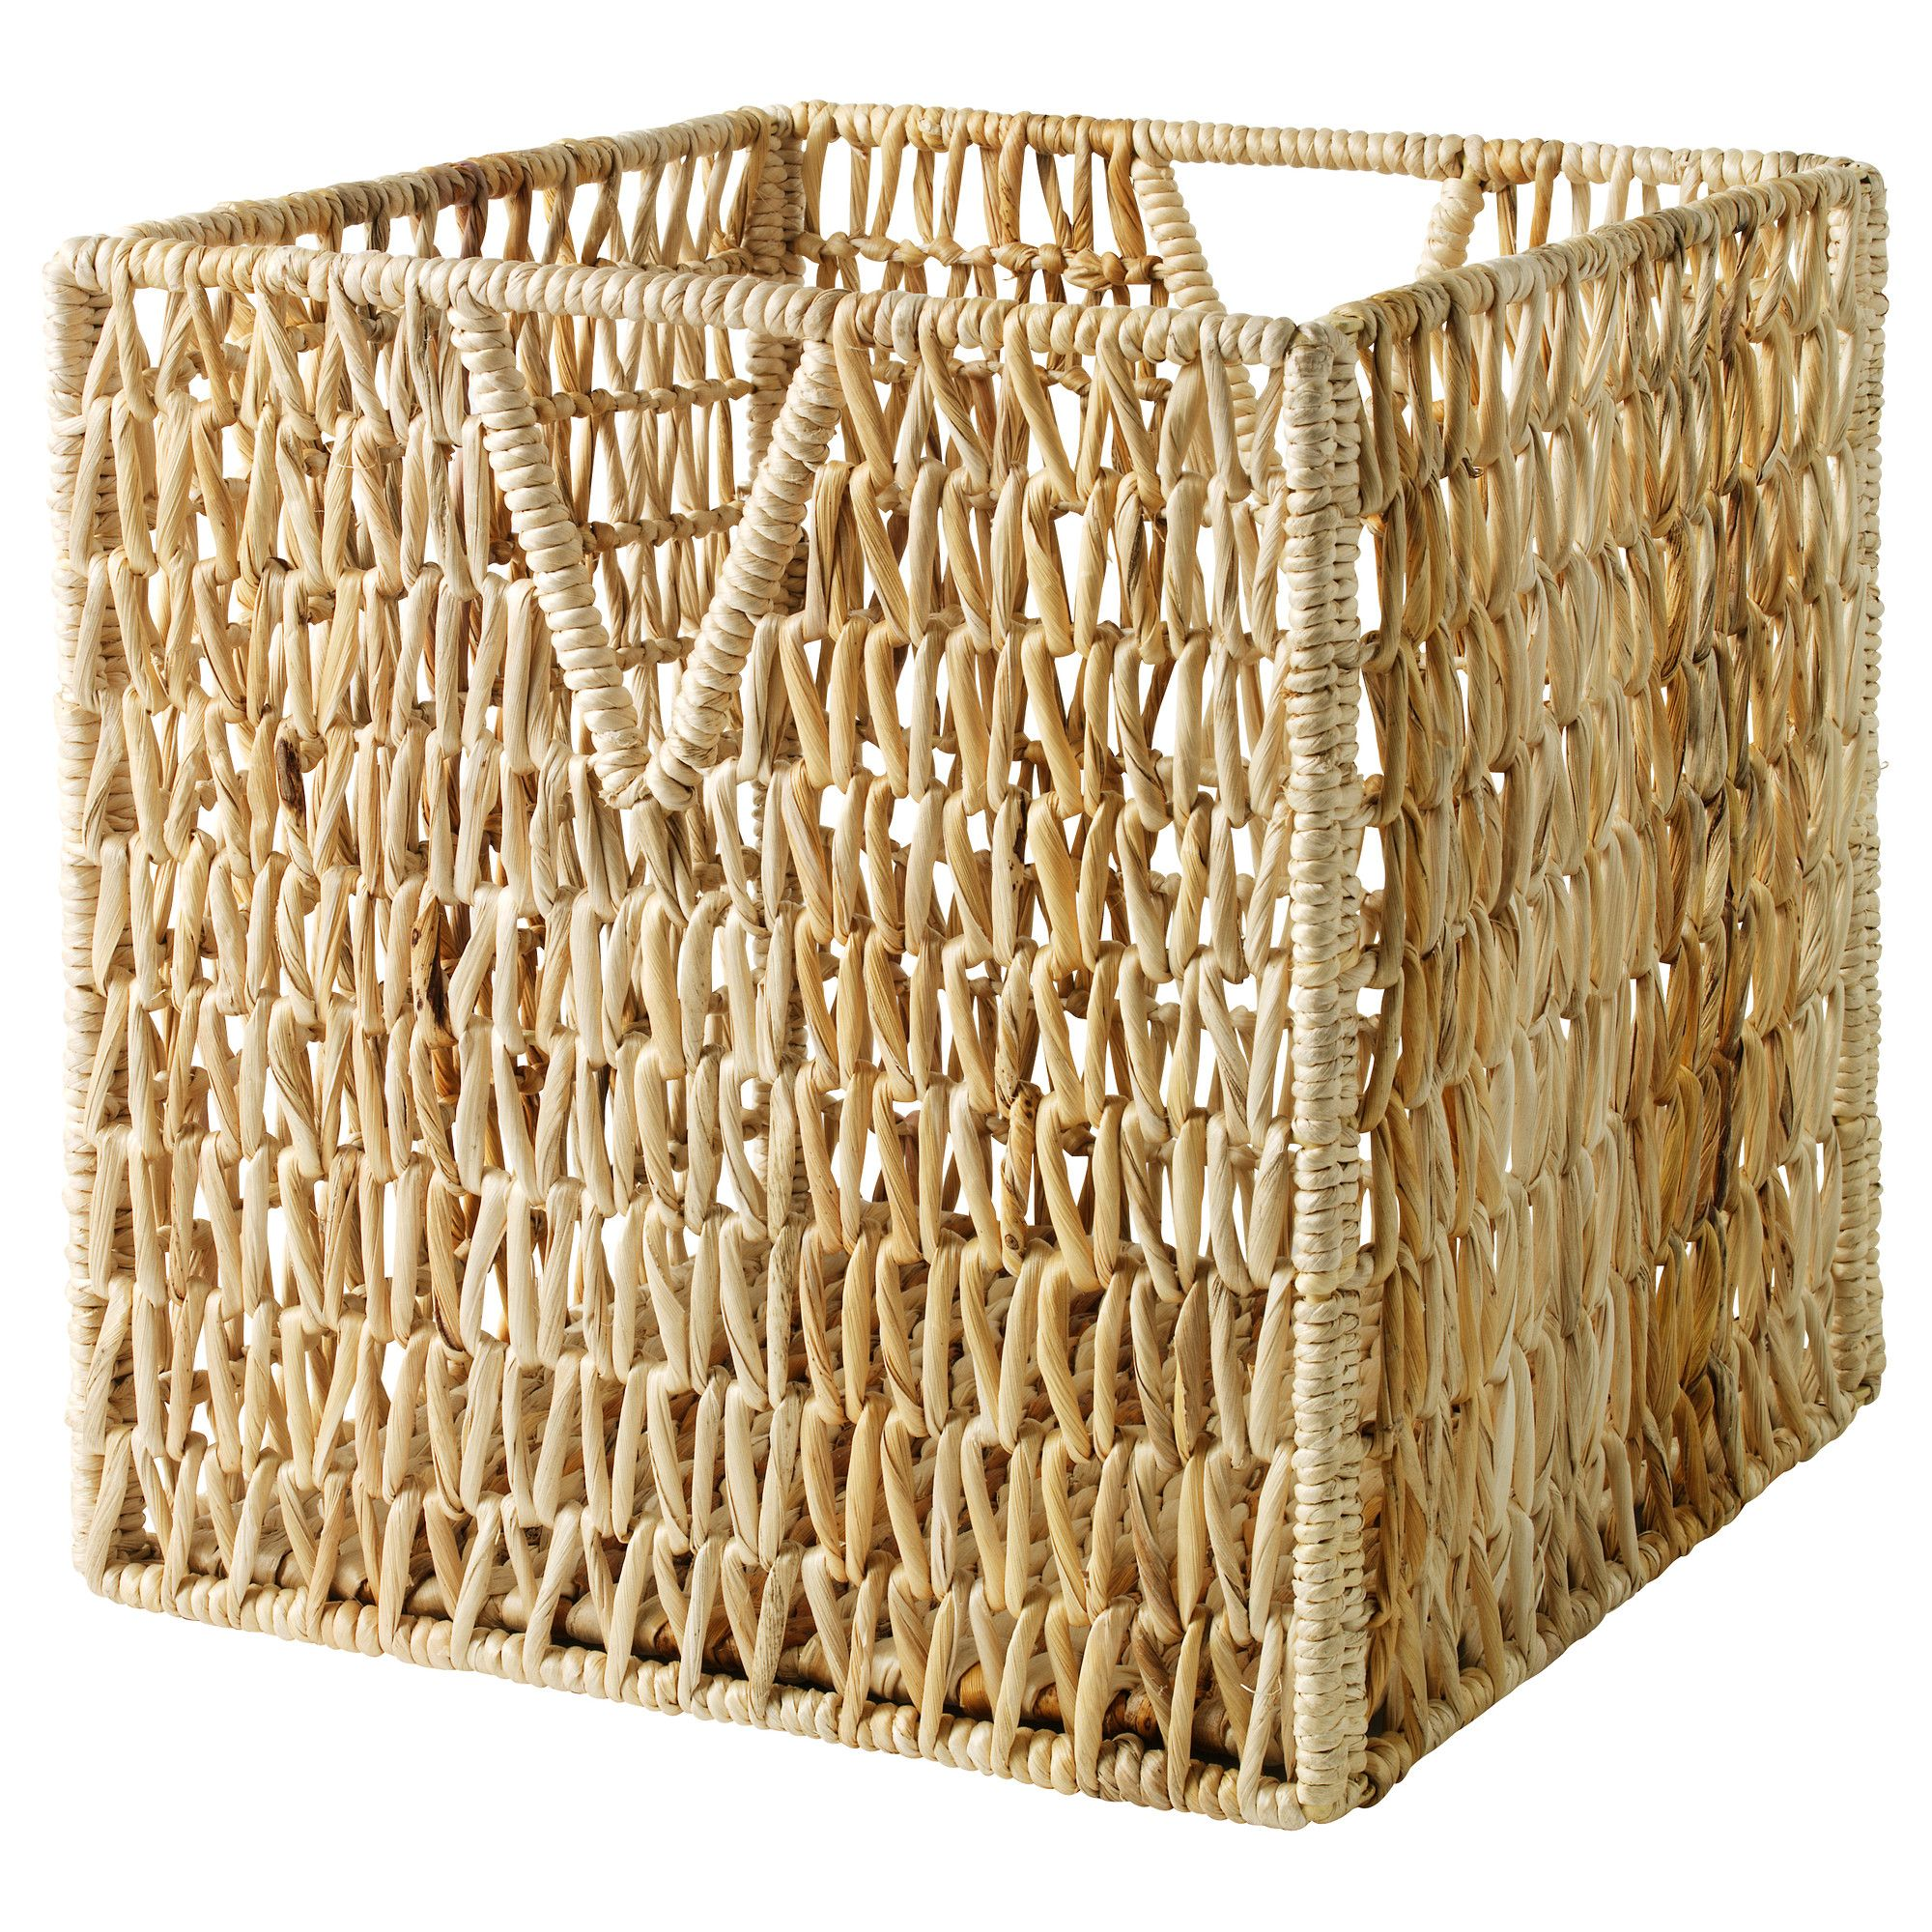 Ikea Us Furniture And Home Furnishings Ikea Basket Storage